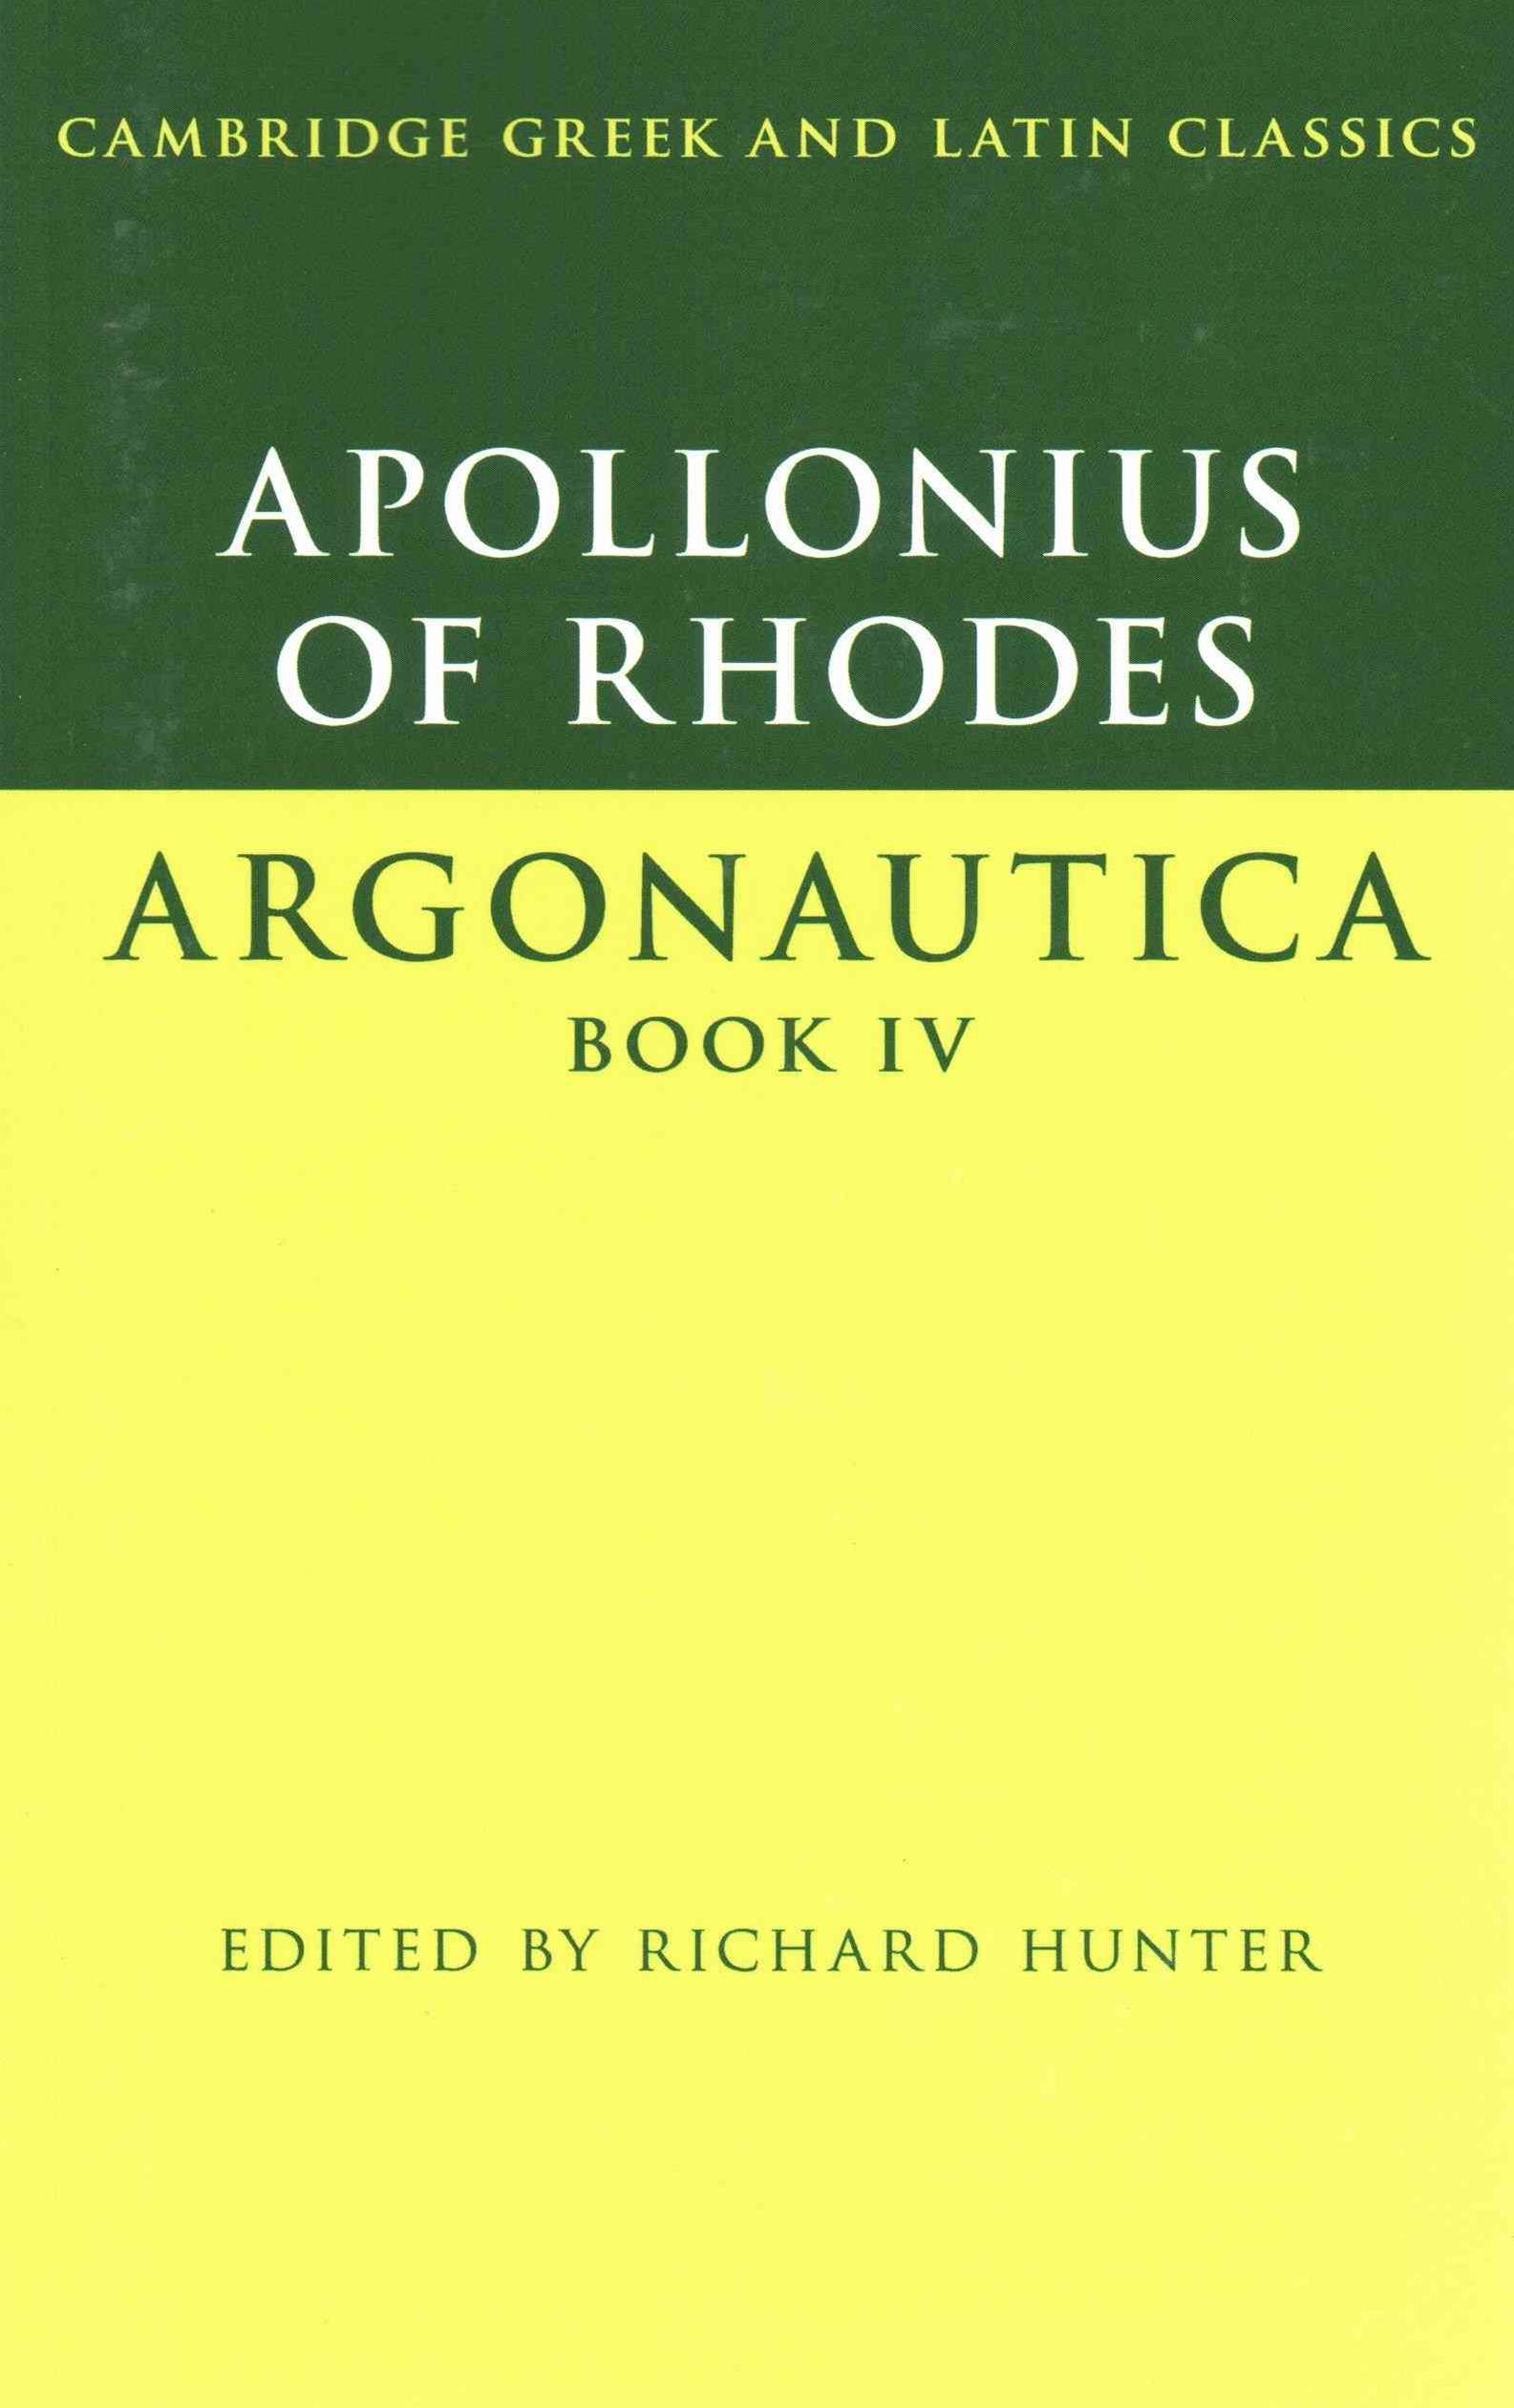 Apollonius of Rhodes: Argonautica Book IV